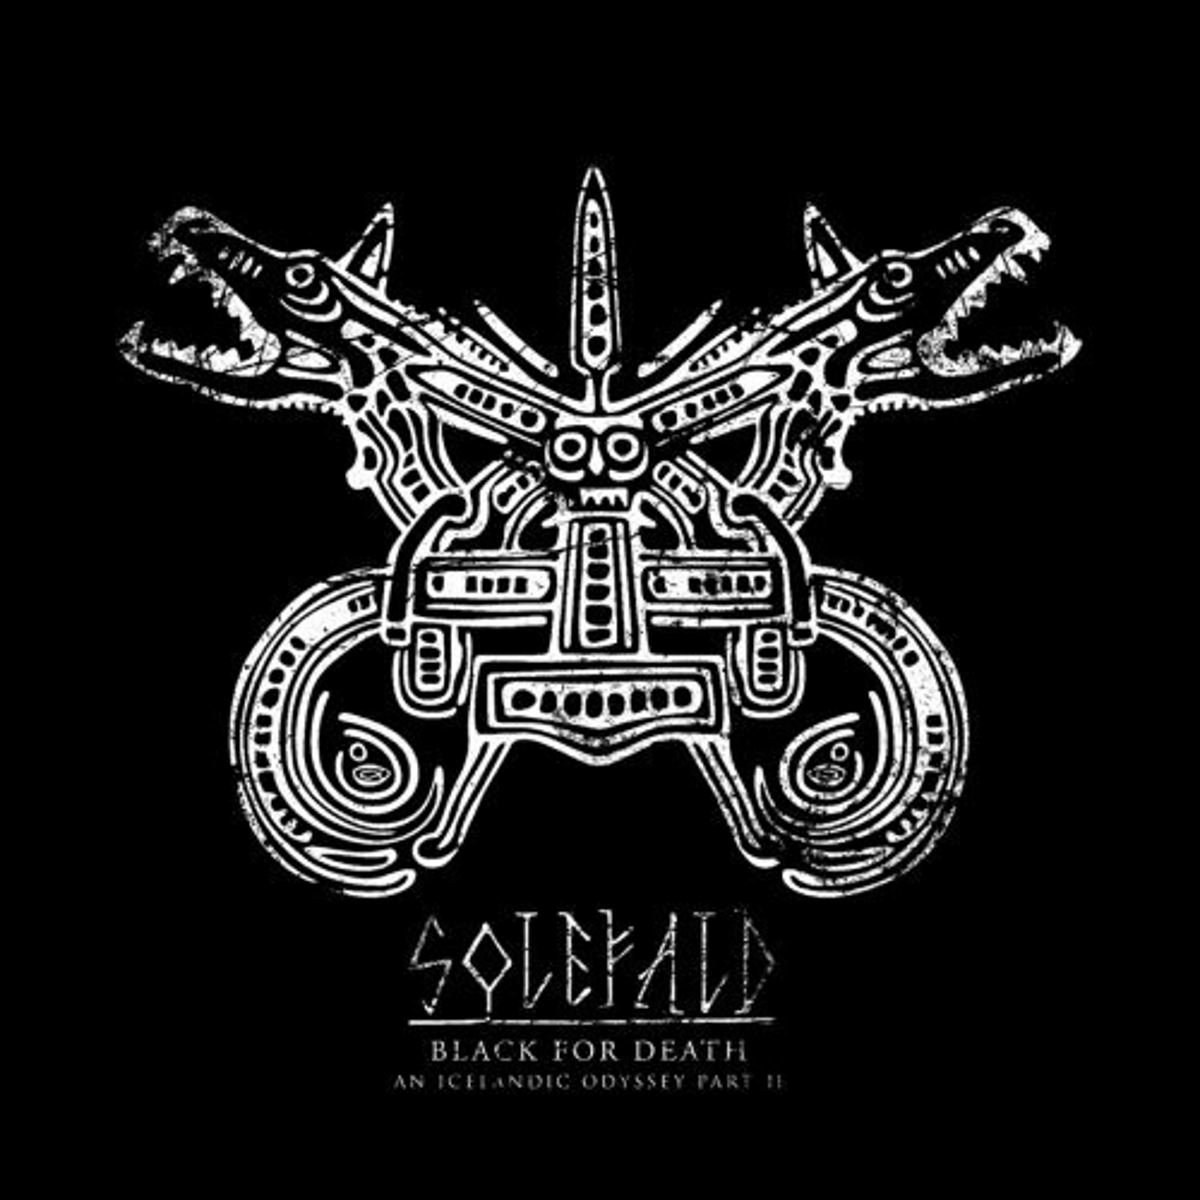 Reviews for Solefald - Black for Death (An Icelandic Odyssey: Part II)